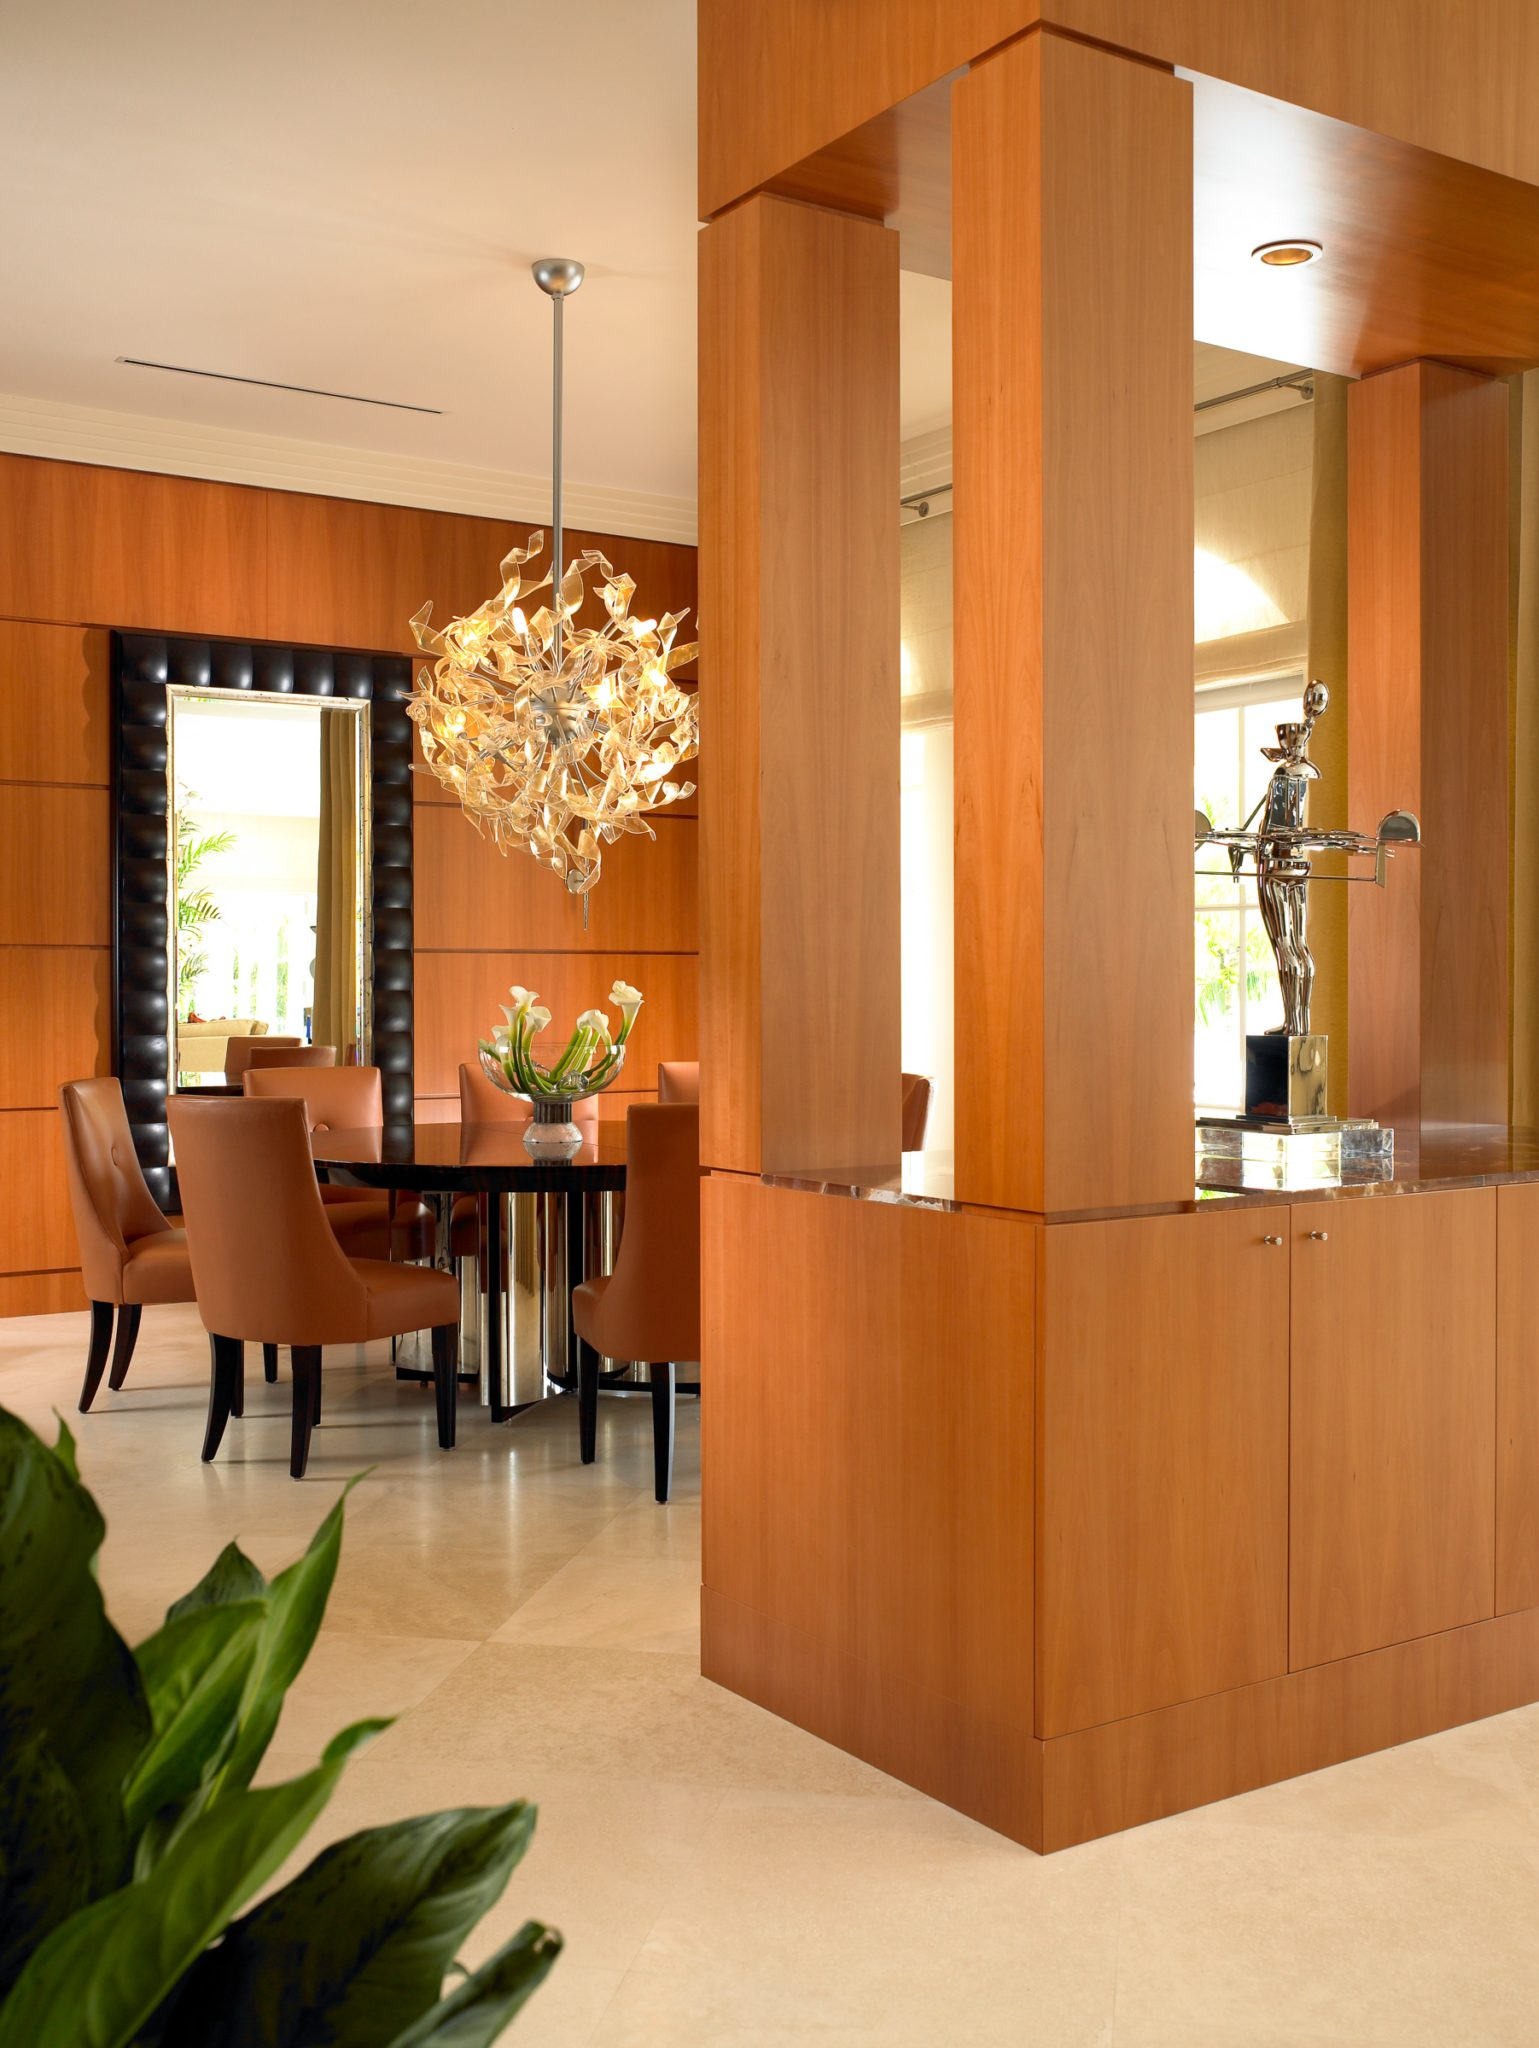 A dining area with pear wood cabinetry and custom full height buffet for storage by Alene Workman Interior Design